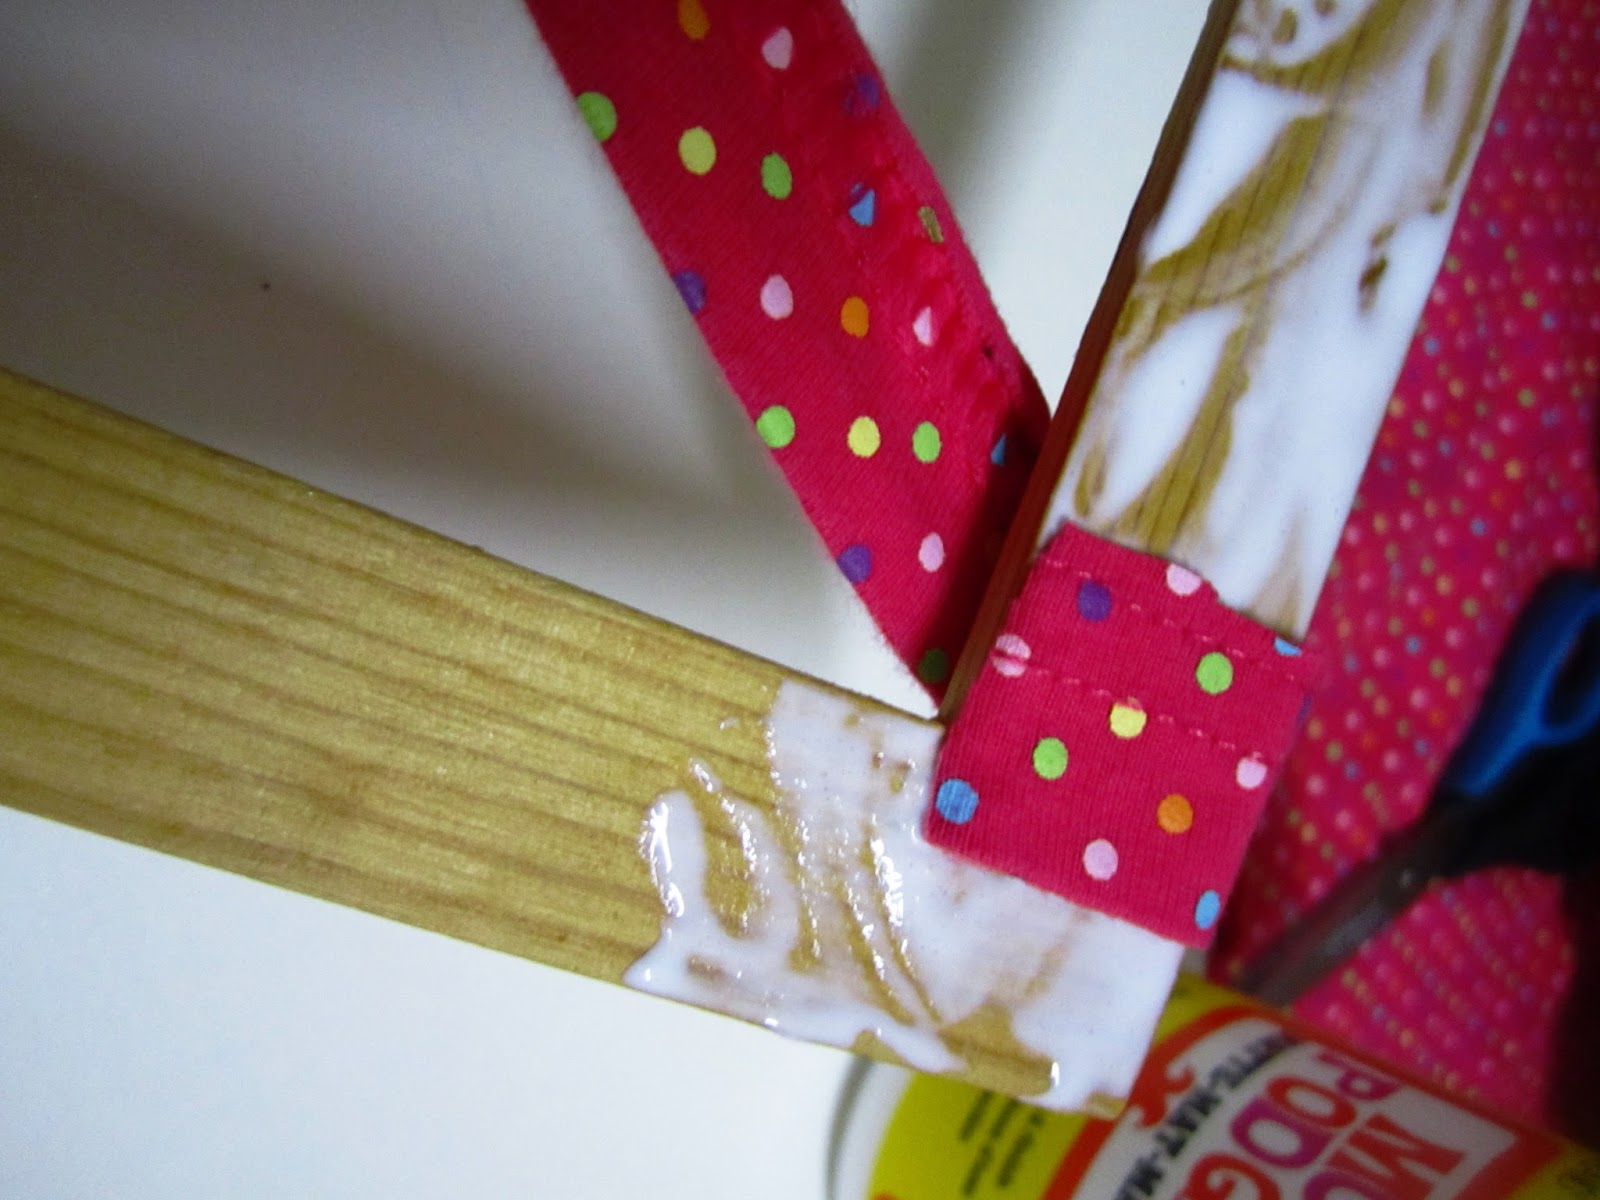 Bee 39 s and san 39 s diy fabric wrapped frames for Diy fabric picture frame